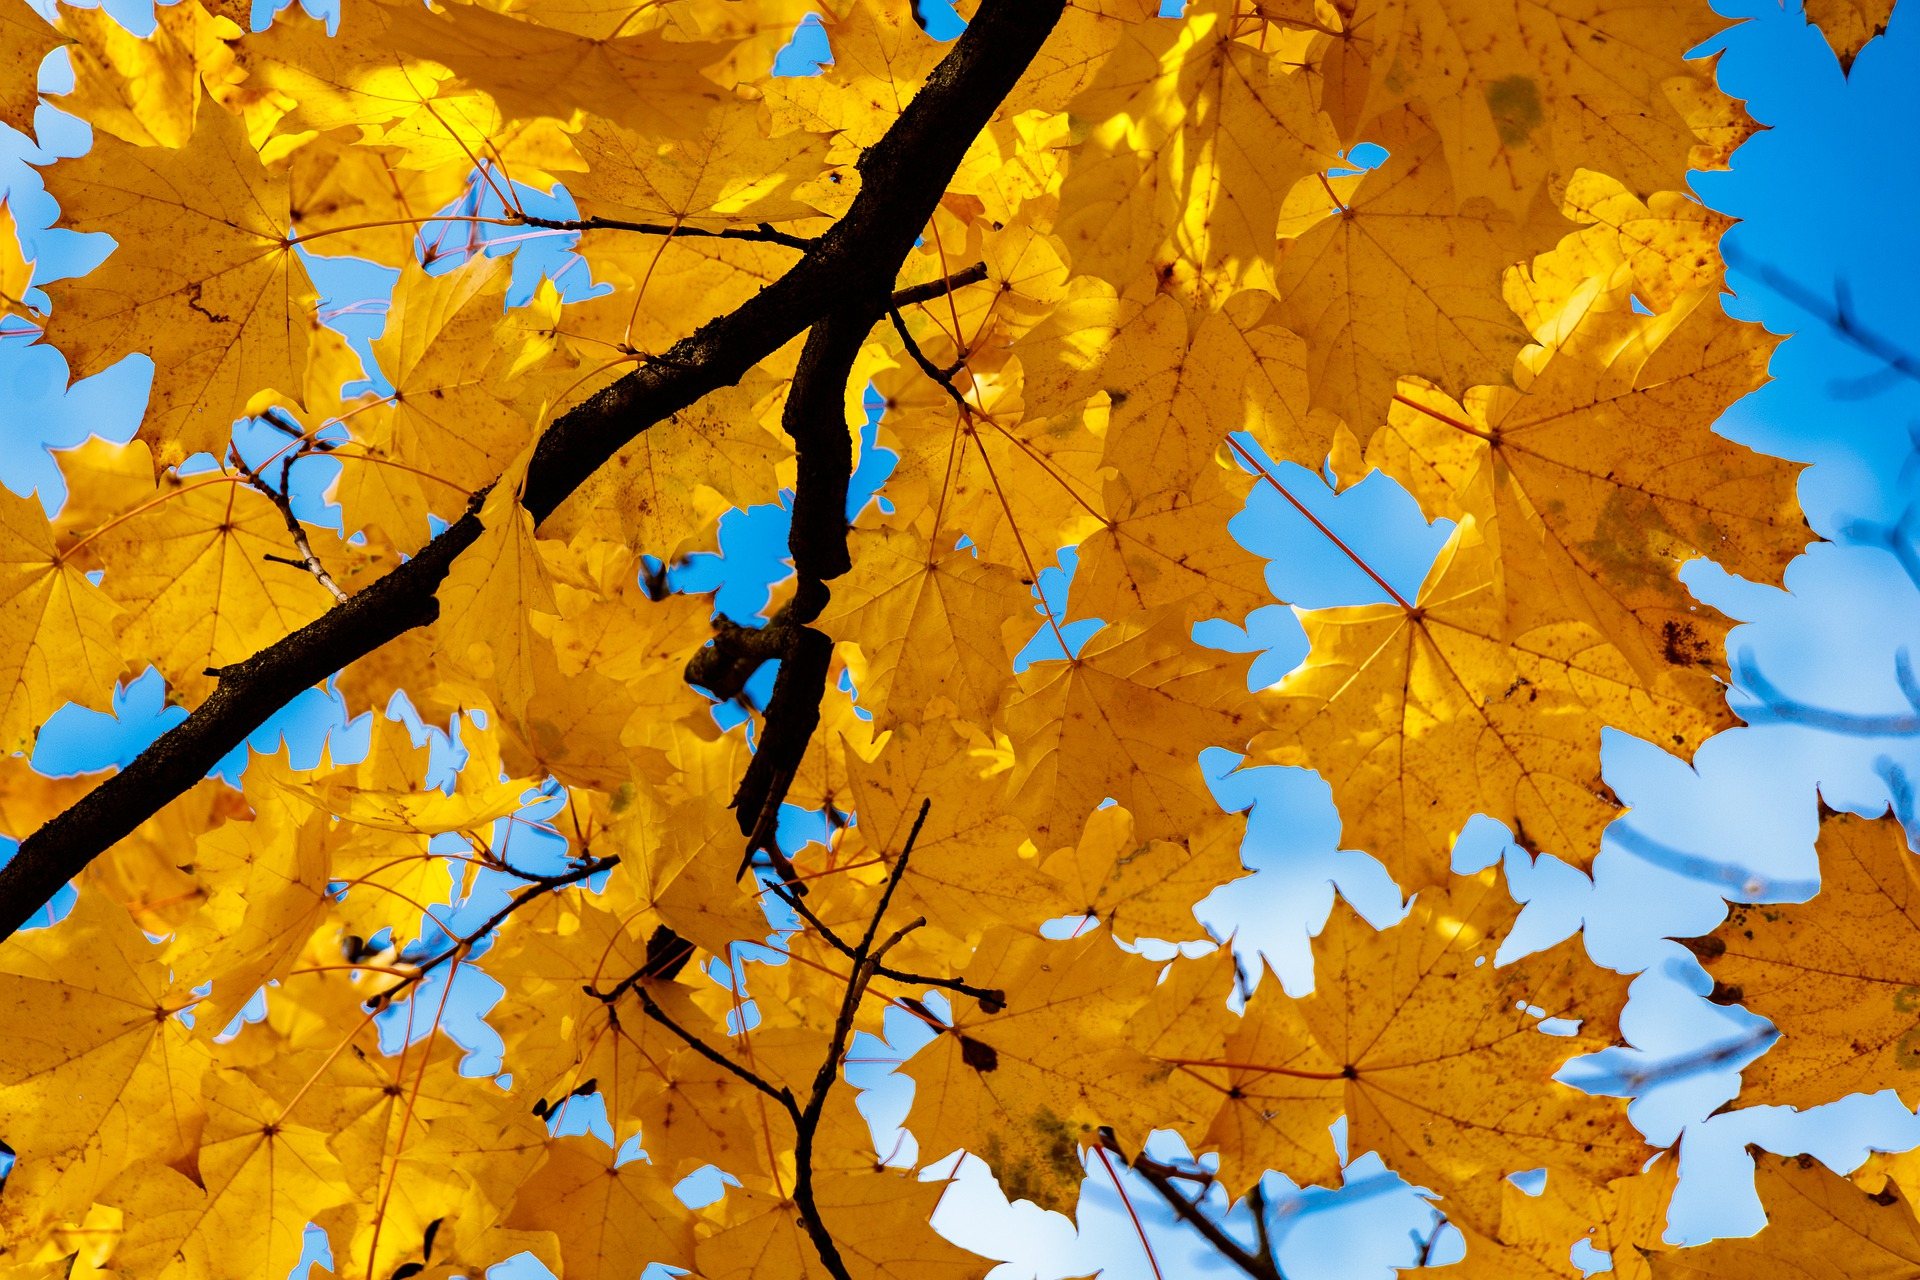 POV from the ground, Golden-yellow maples leaves silhouetted against a clear blue sky